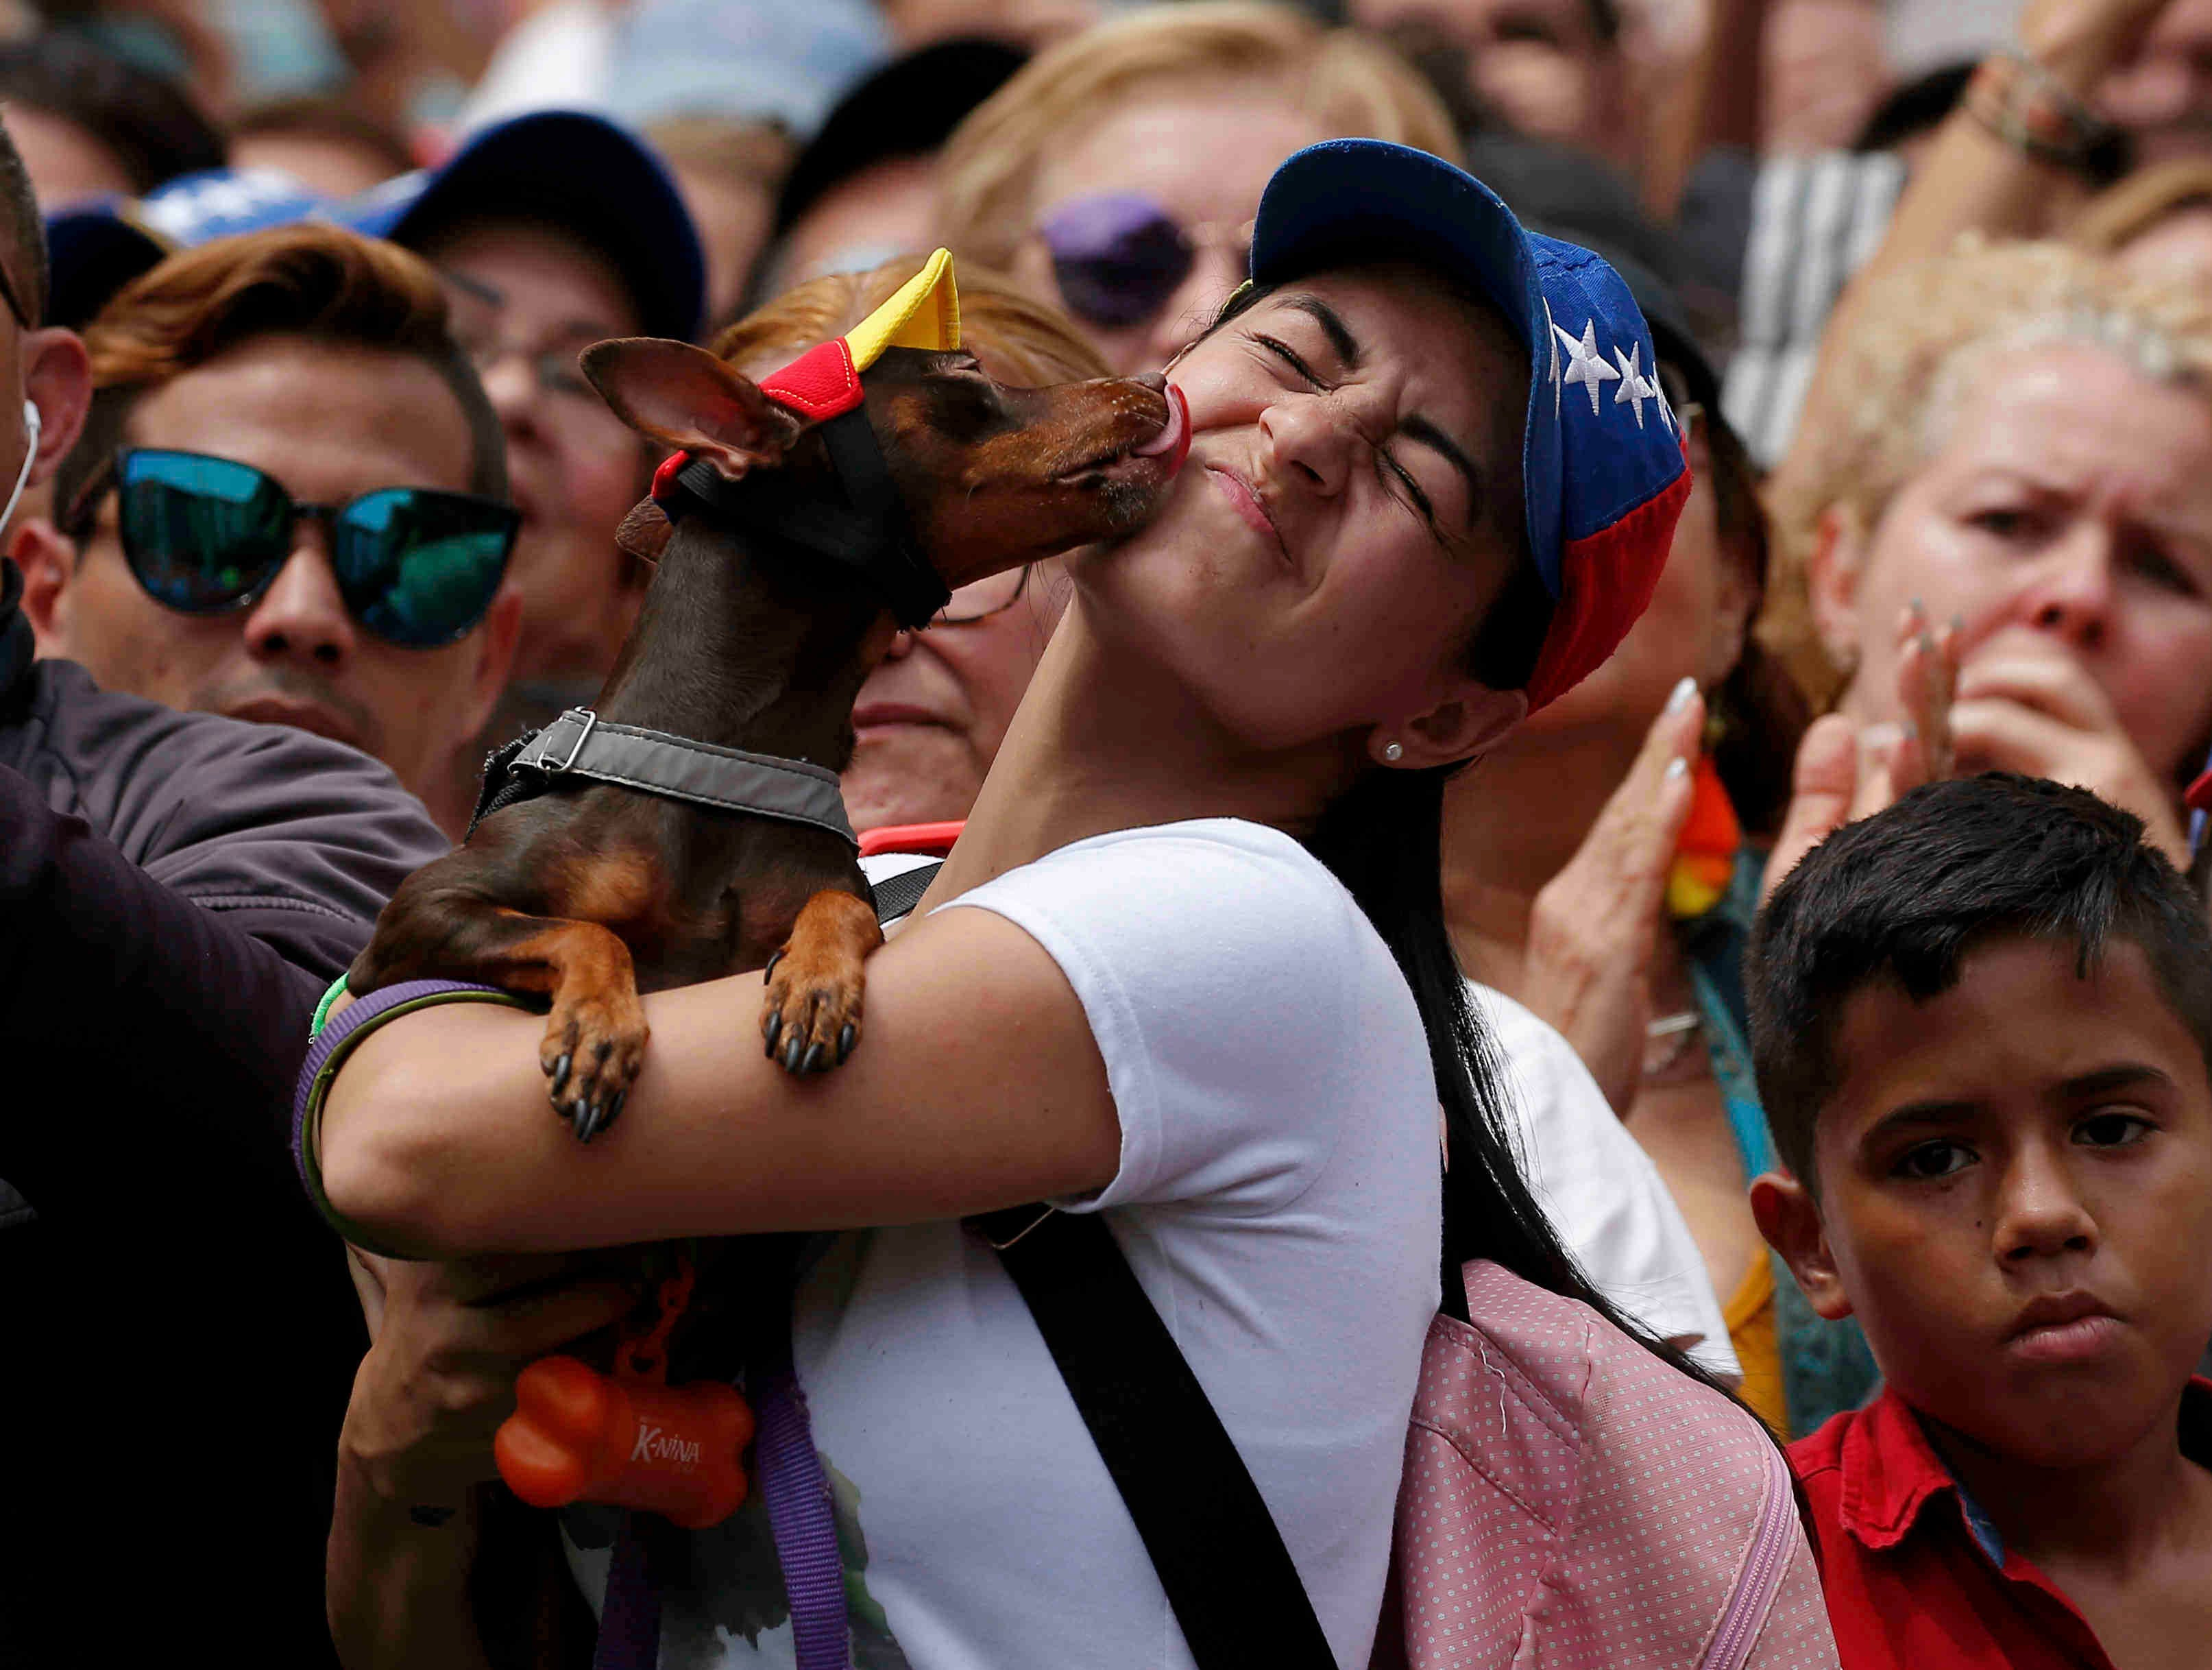 A dog licks his owner during a rally in commemoration of International Women's Day, in Caracas, Venezuela, Friday, March 8, 2019. Marches and protests are held Friday across the globe under the slogan #BalanceforBetter, with calls for a more gender-balanced world.